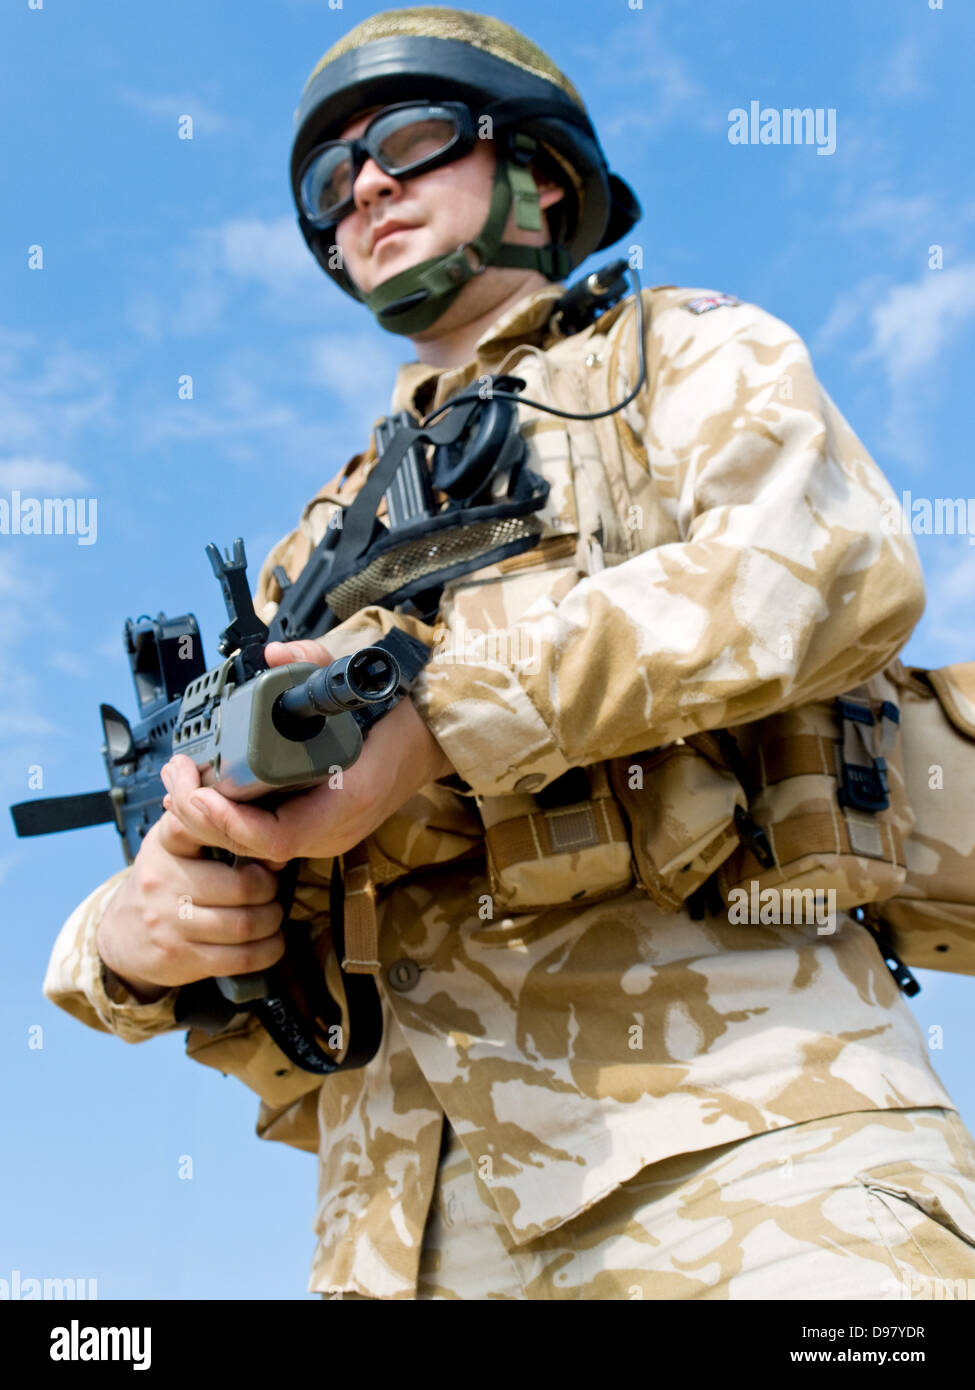 British Royal Commando - Stock Image